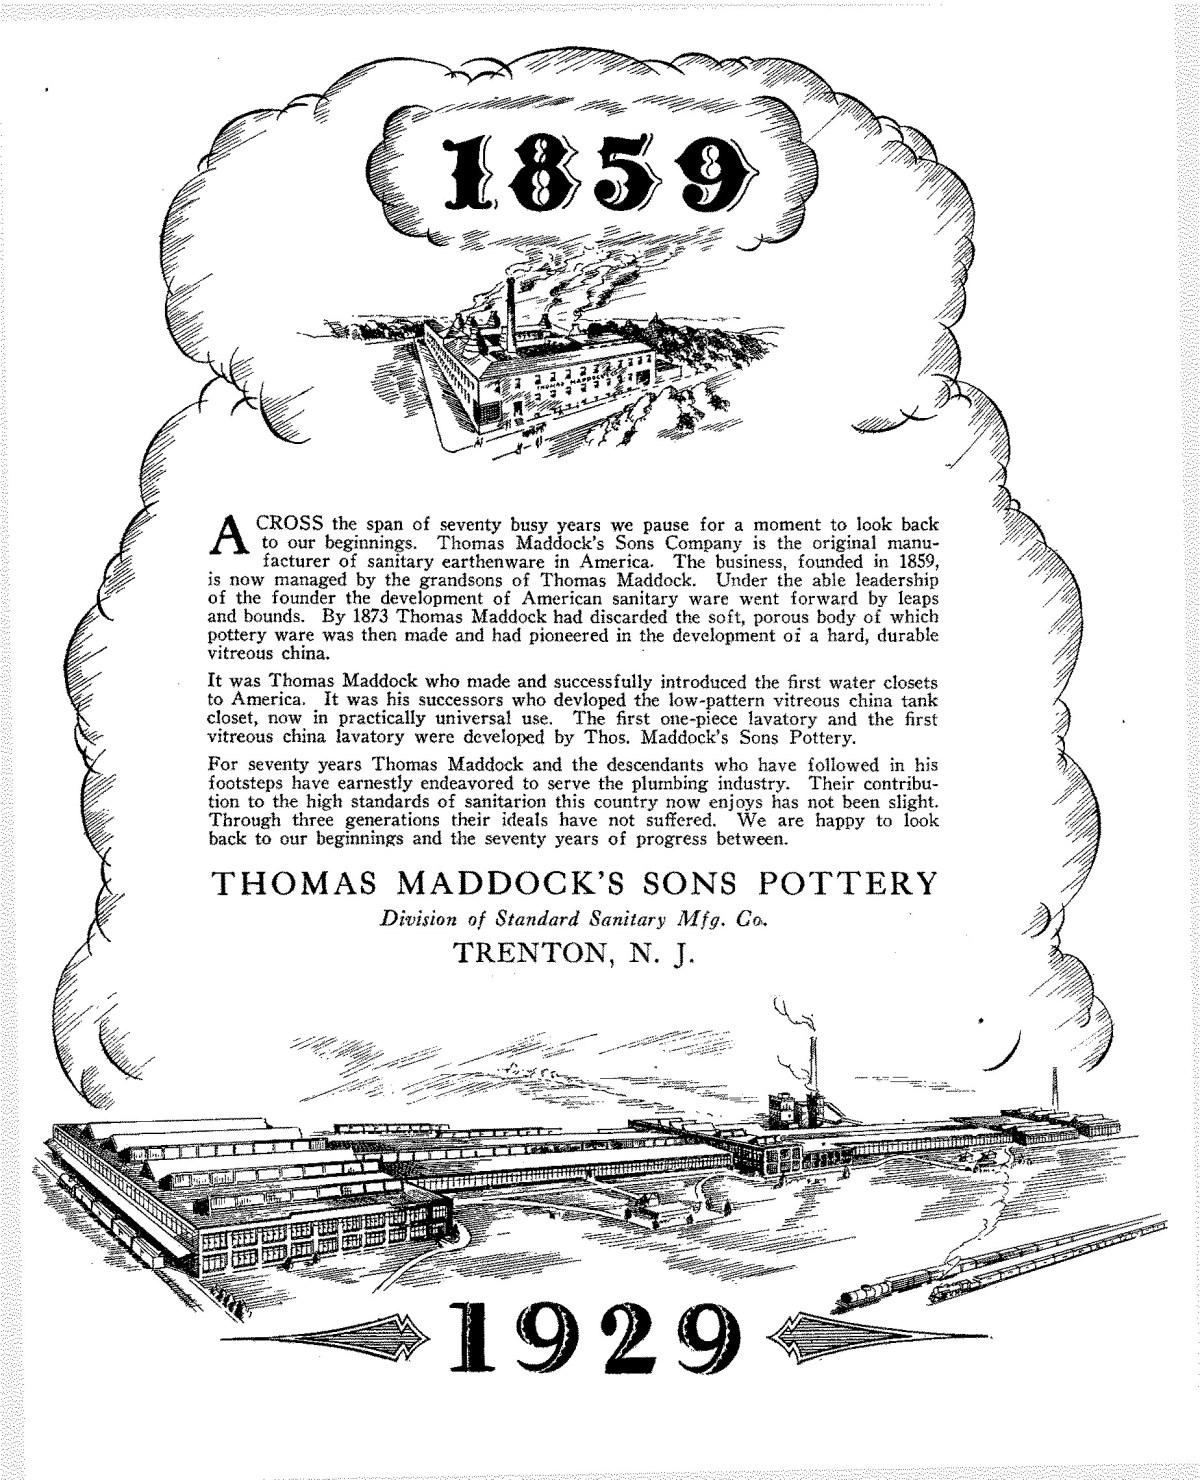 Thomas Maddock's Sons Pottery Advertisement